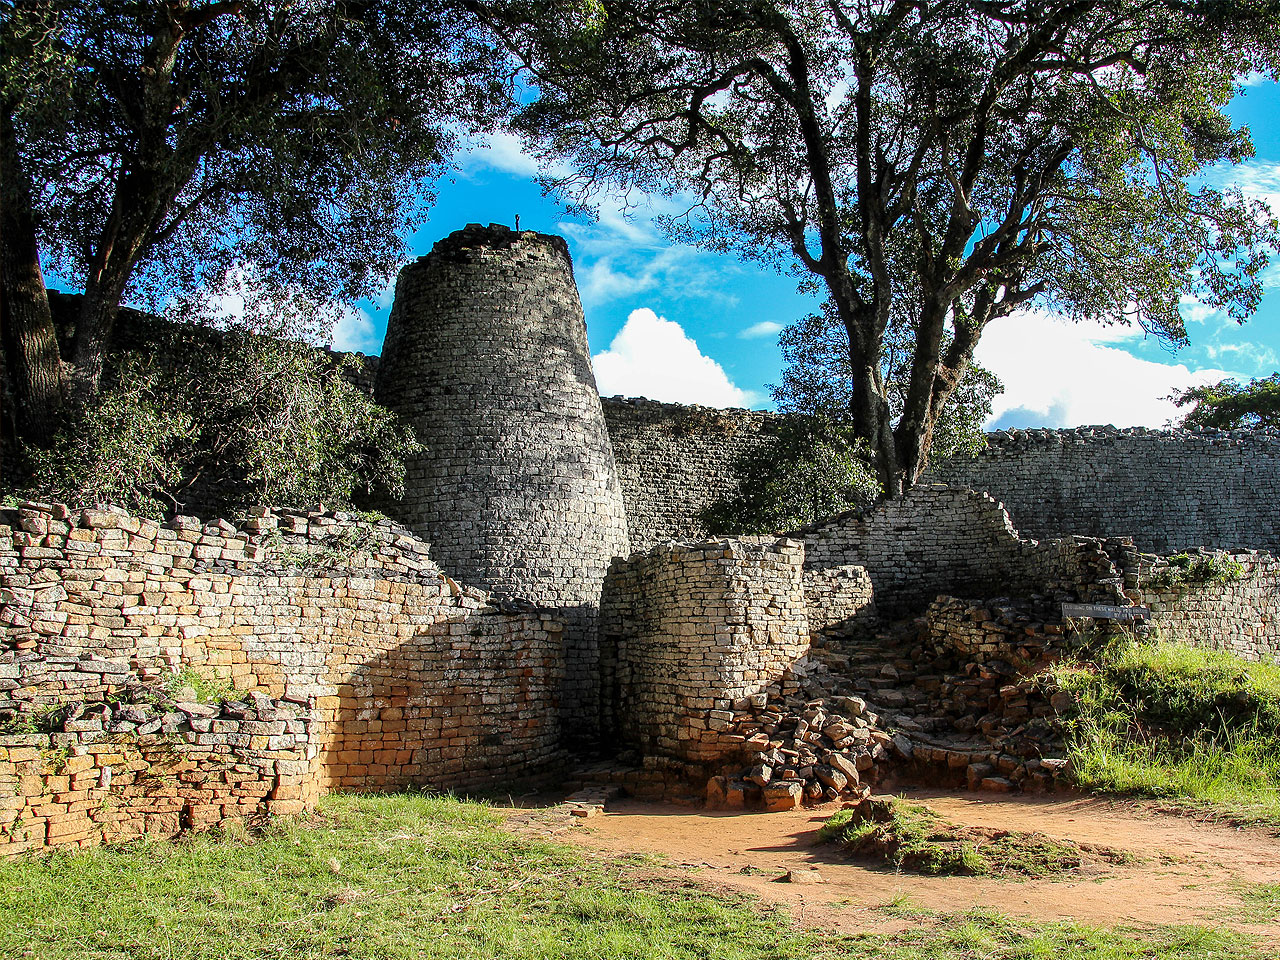 The national monument of the Great Zimbabwe ruins.